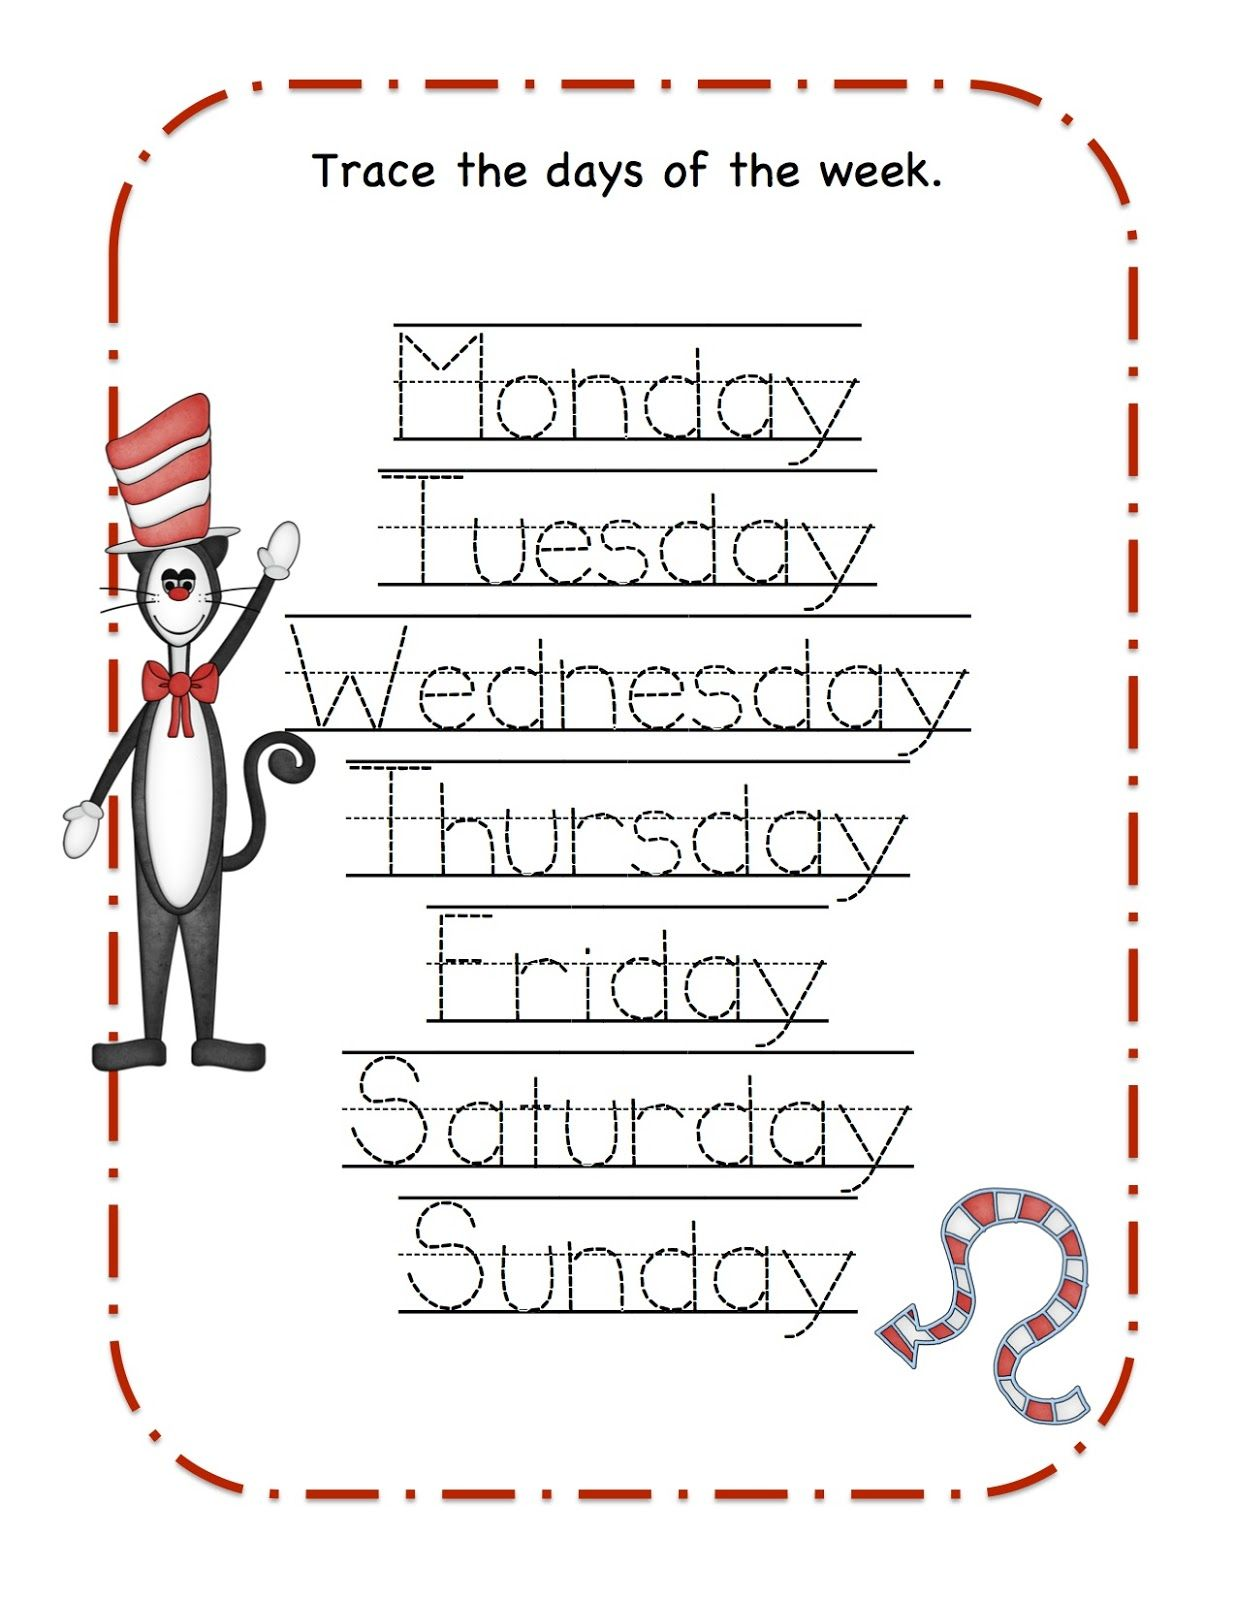 Preschool Printables That Cat Printable Seuss Days Of The Week